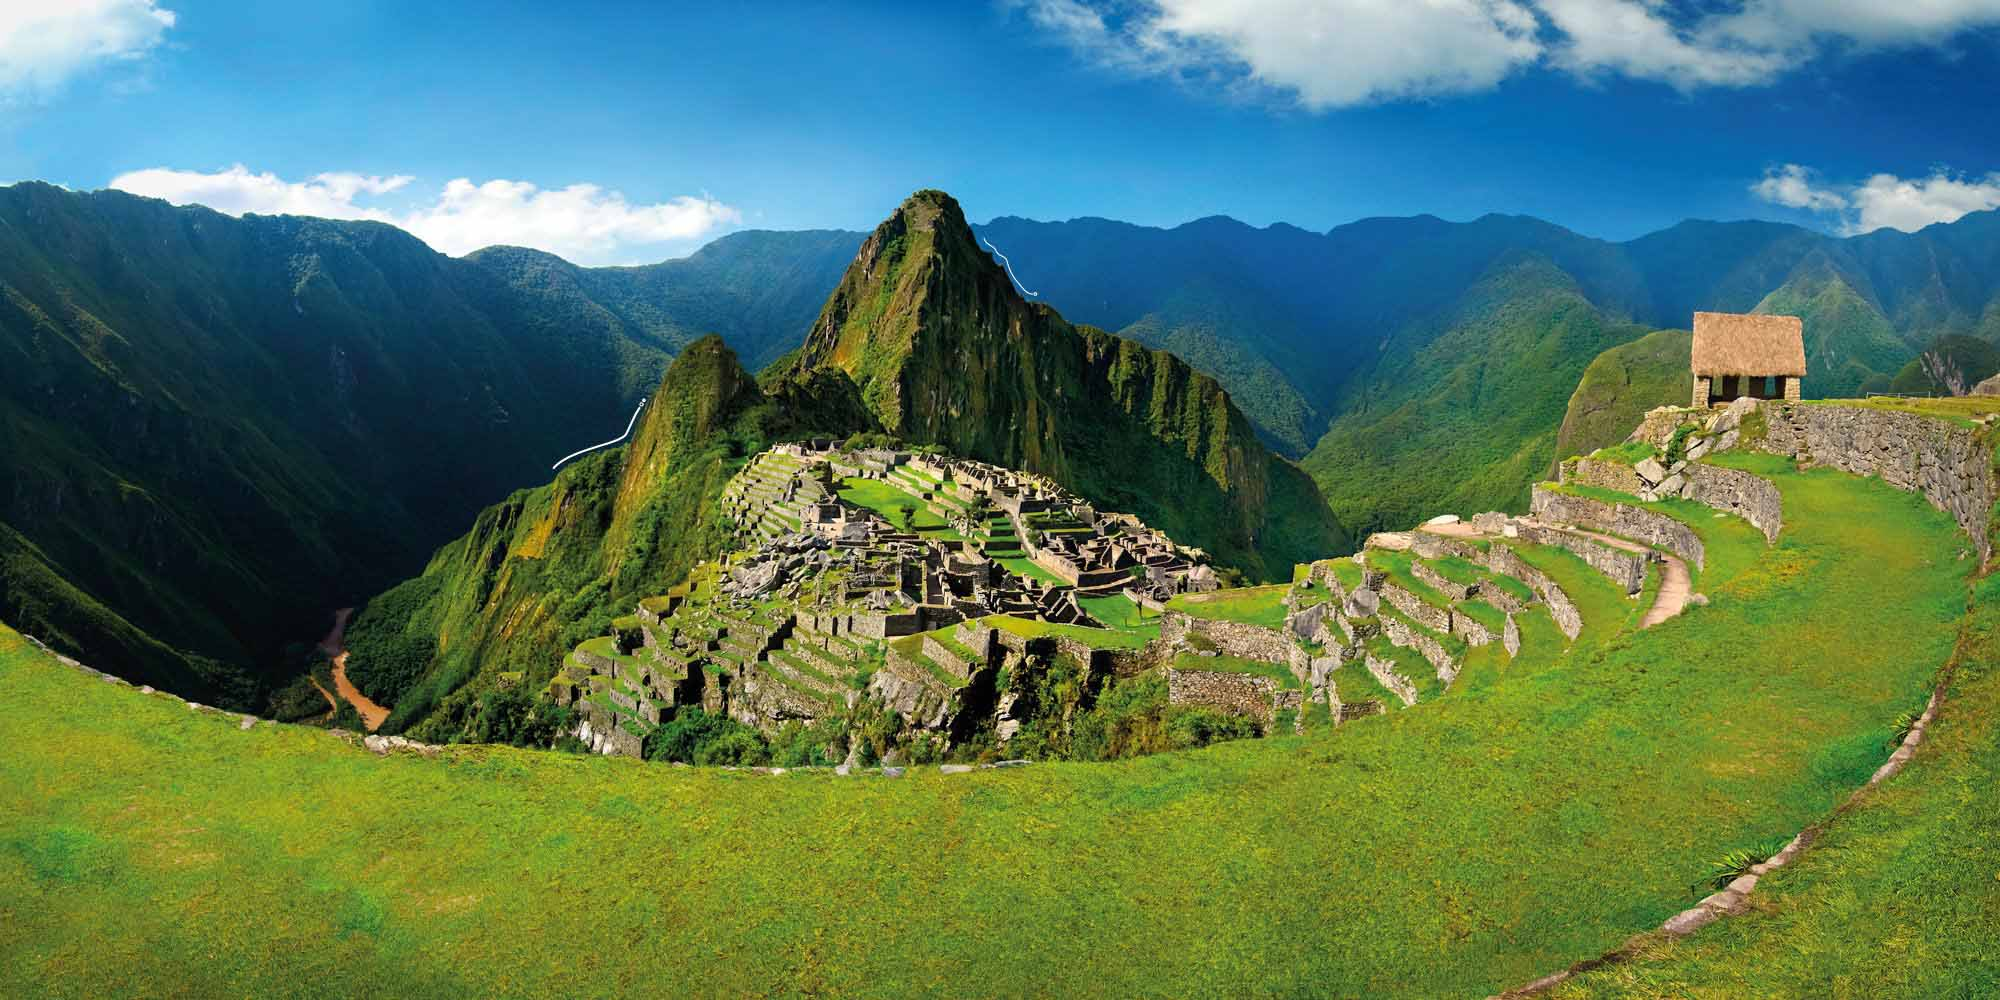 Explore Machu Picchu in Peru, following the ancient Inca trail